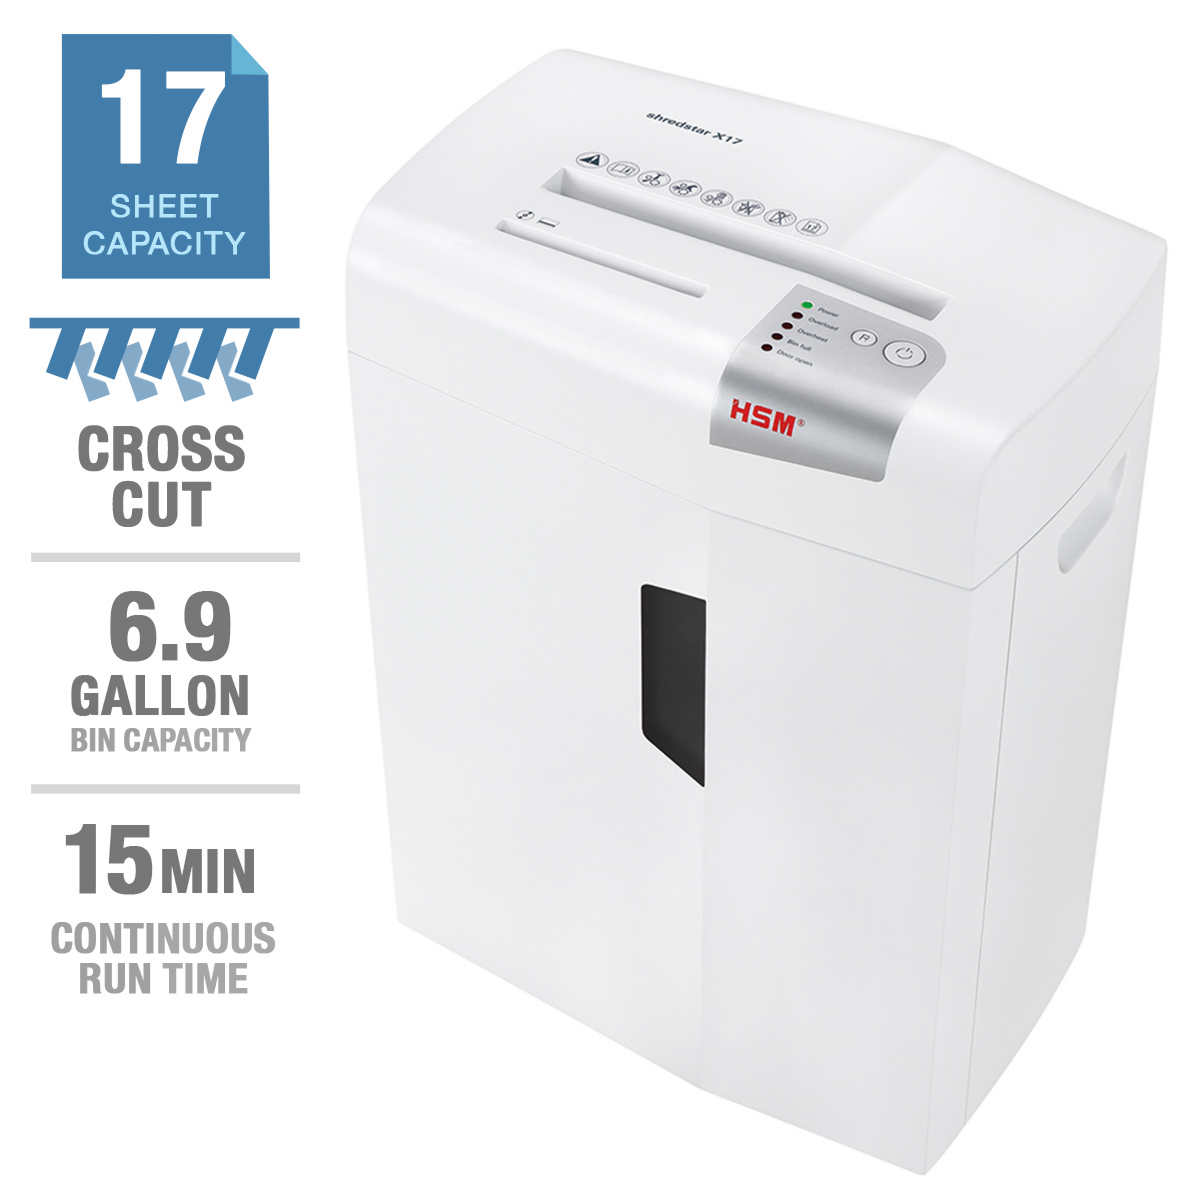 cross cut paper shredder Series 1 industrial paper shredders are available in 3 to 10 horsepower modelsthey look identical but each successive model has more power, a larger drive train and greater shredding capacity.